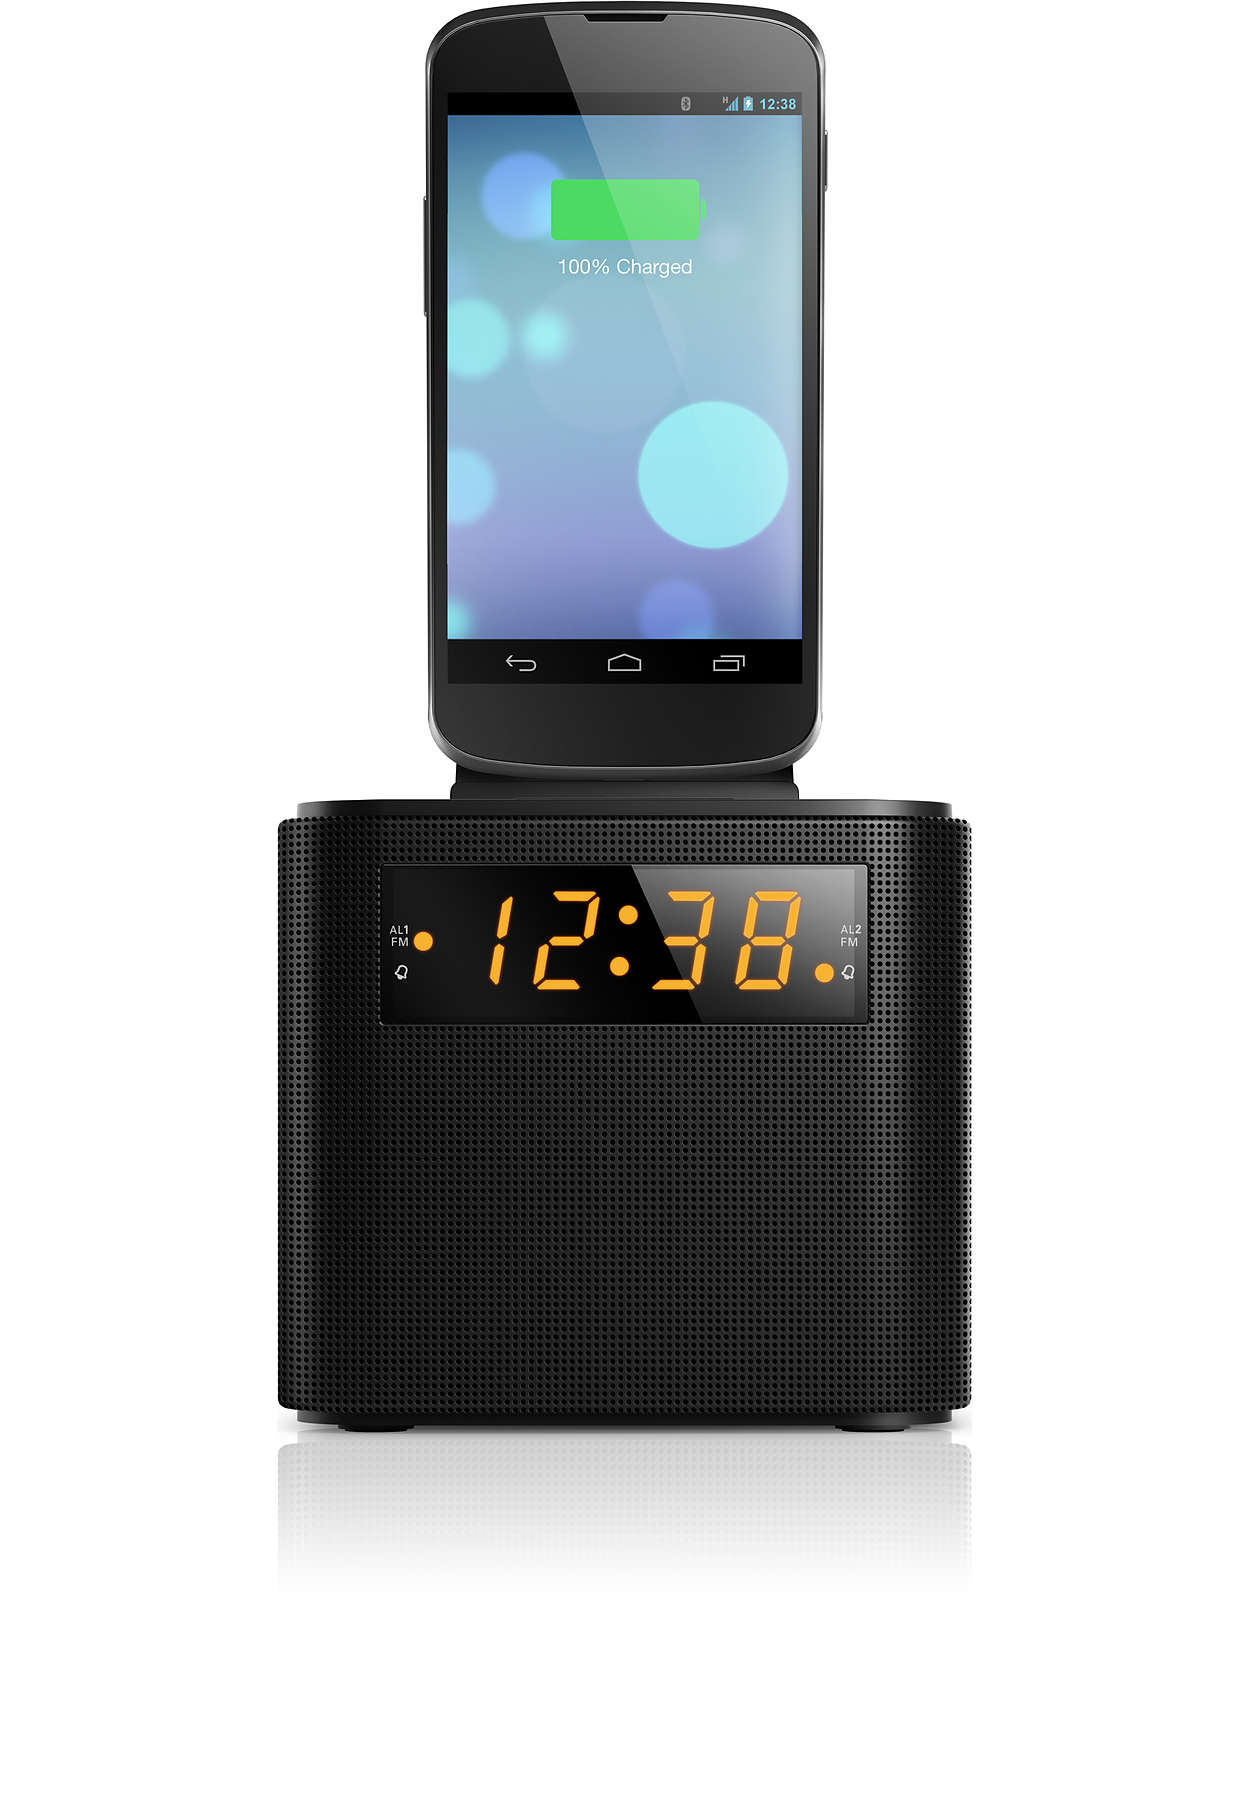 Wake up to FM radio and a smartphone fully charged